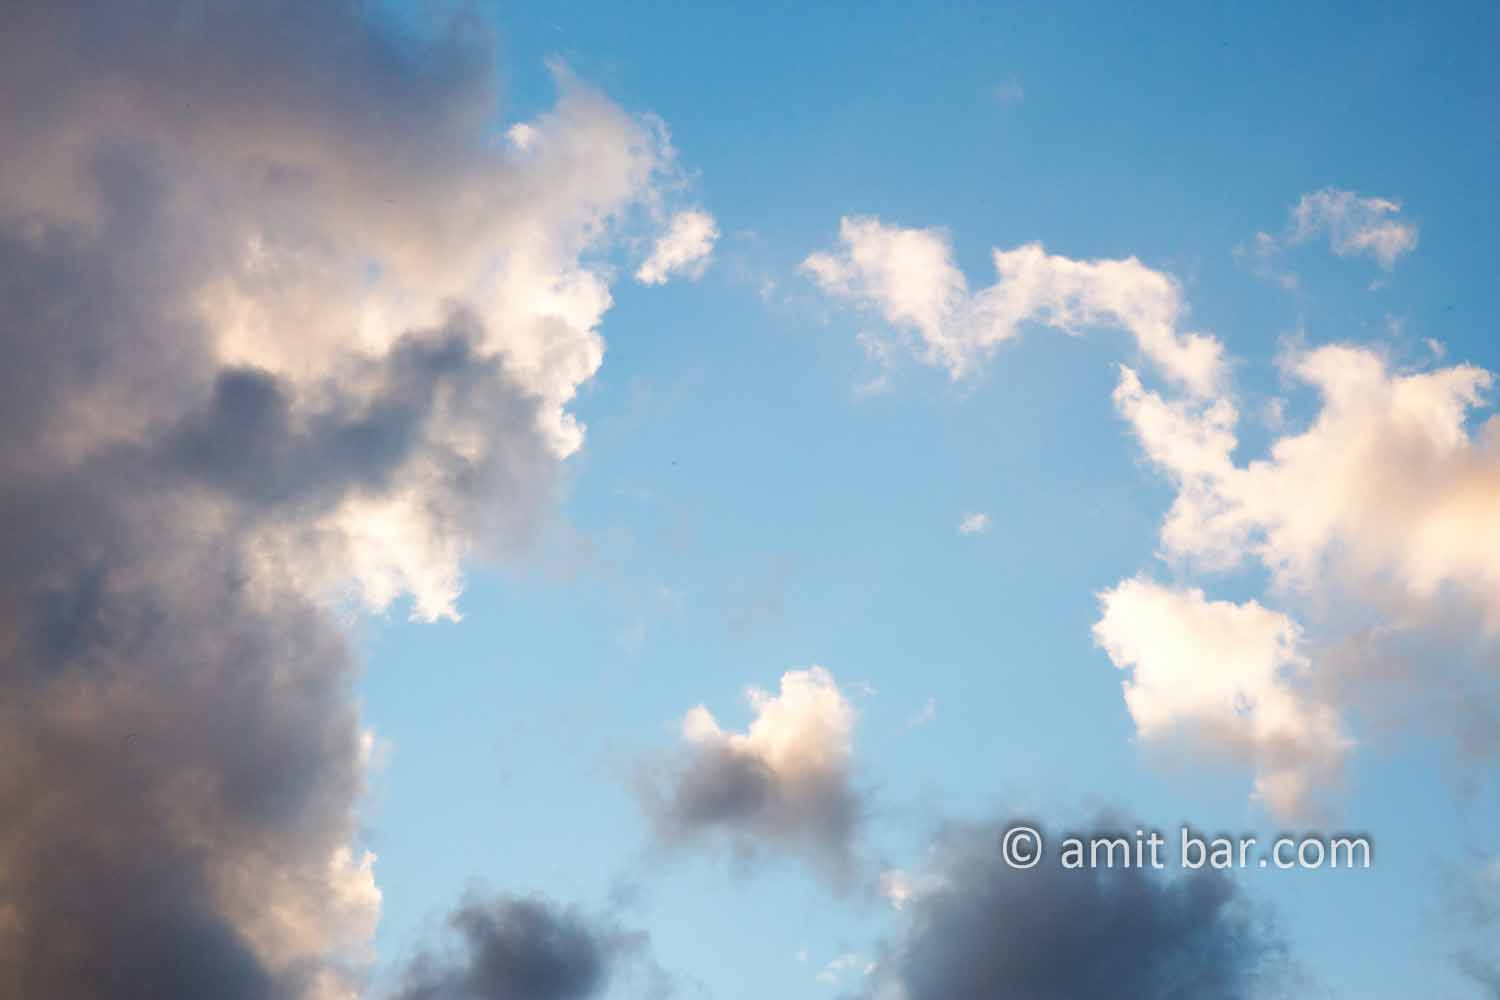 Clouds XII: black and white clouds in blue sky